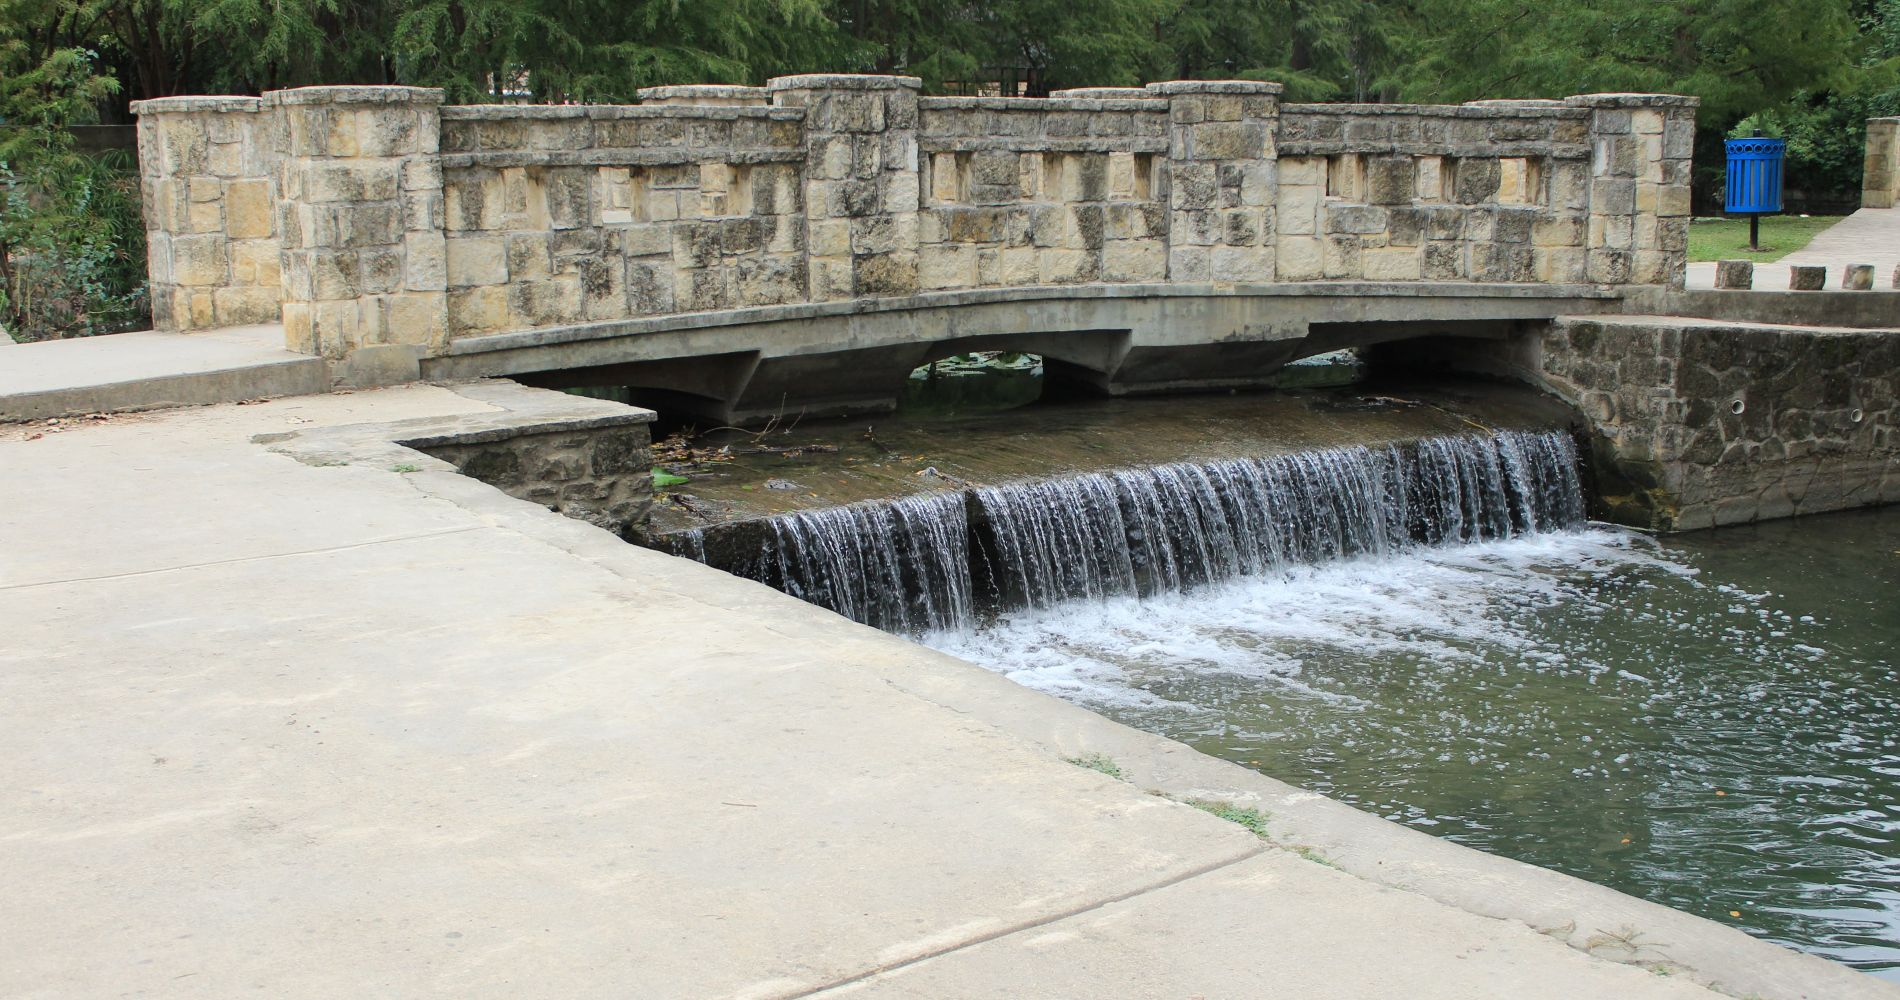 Take a walk through Brackenridge Park in Texas